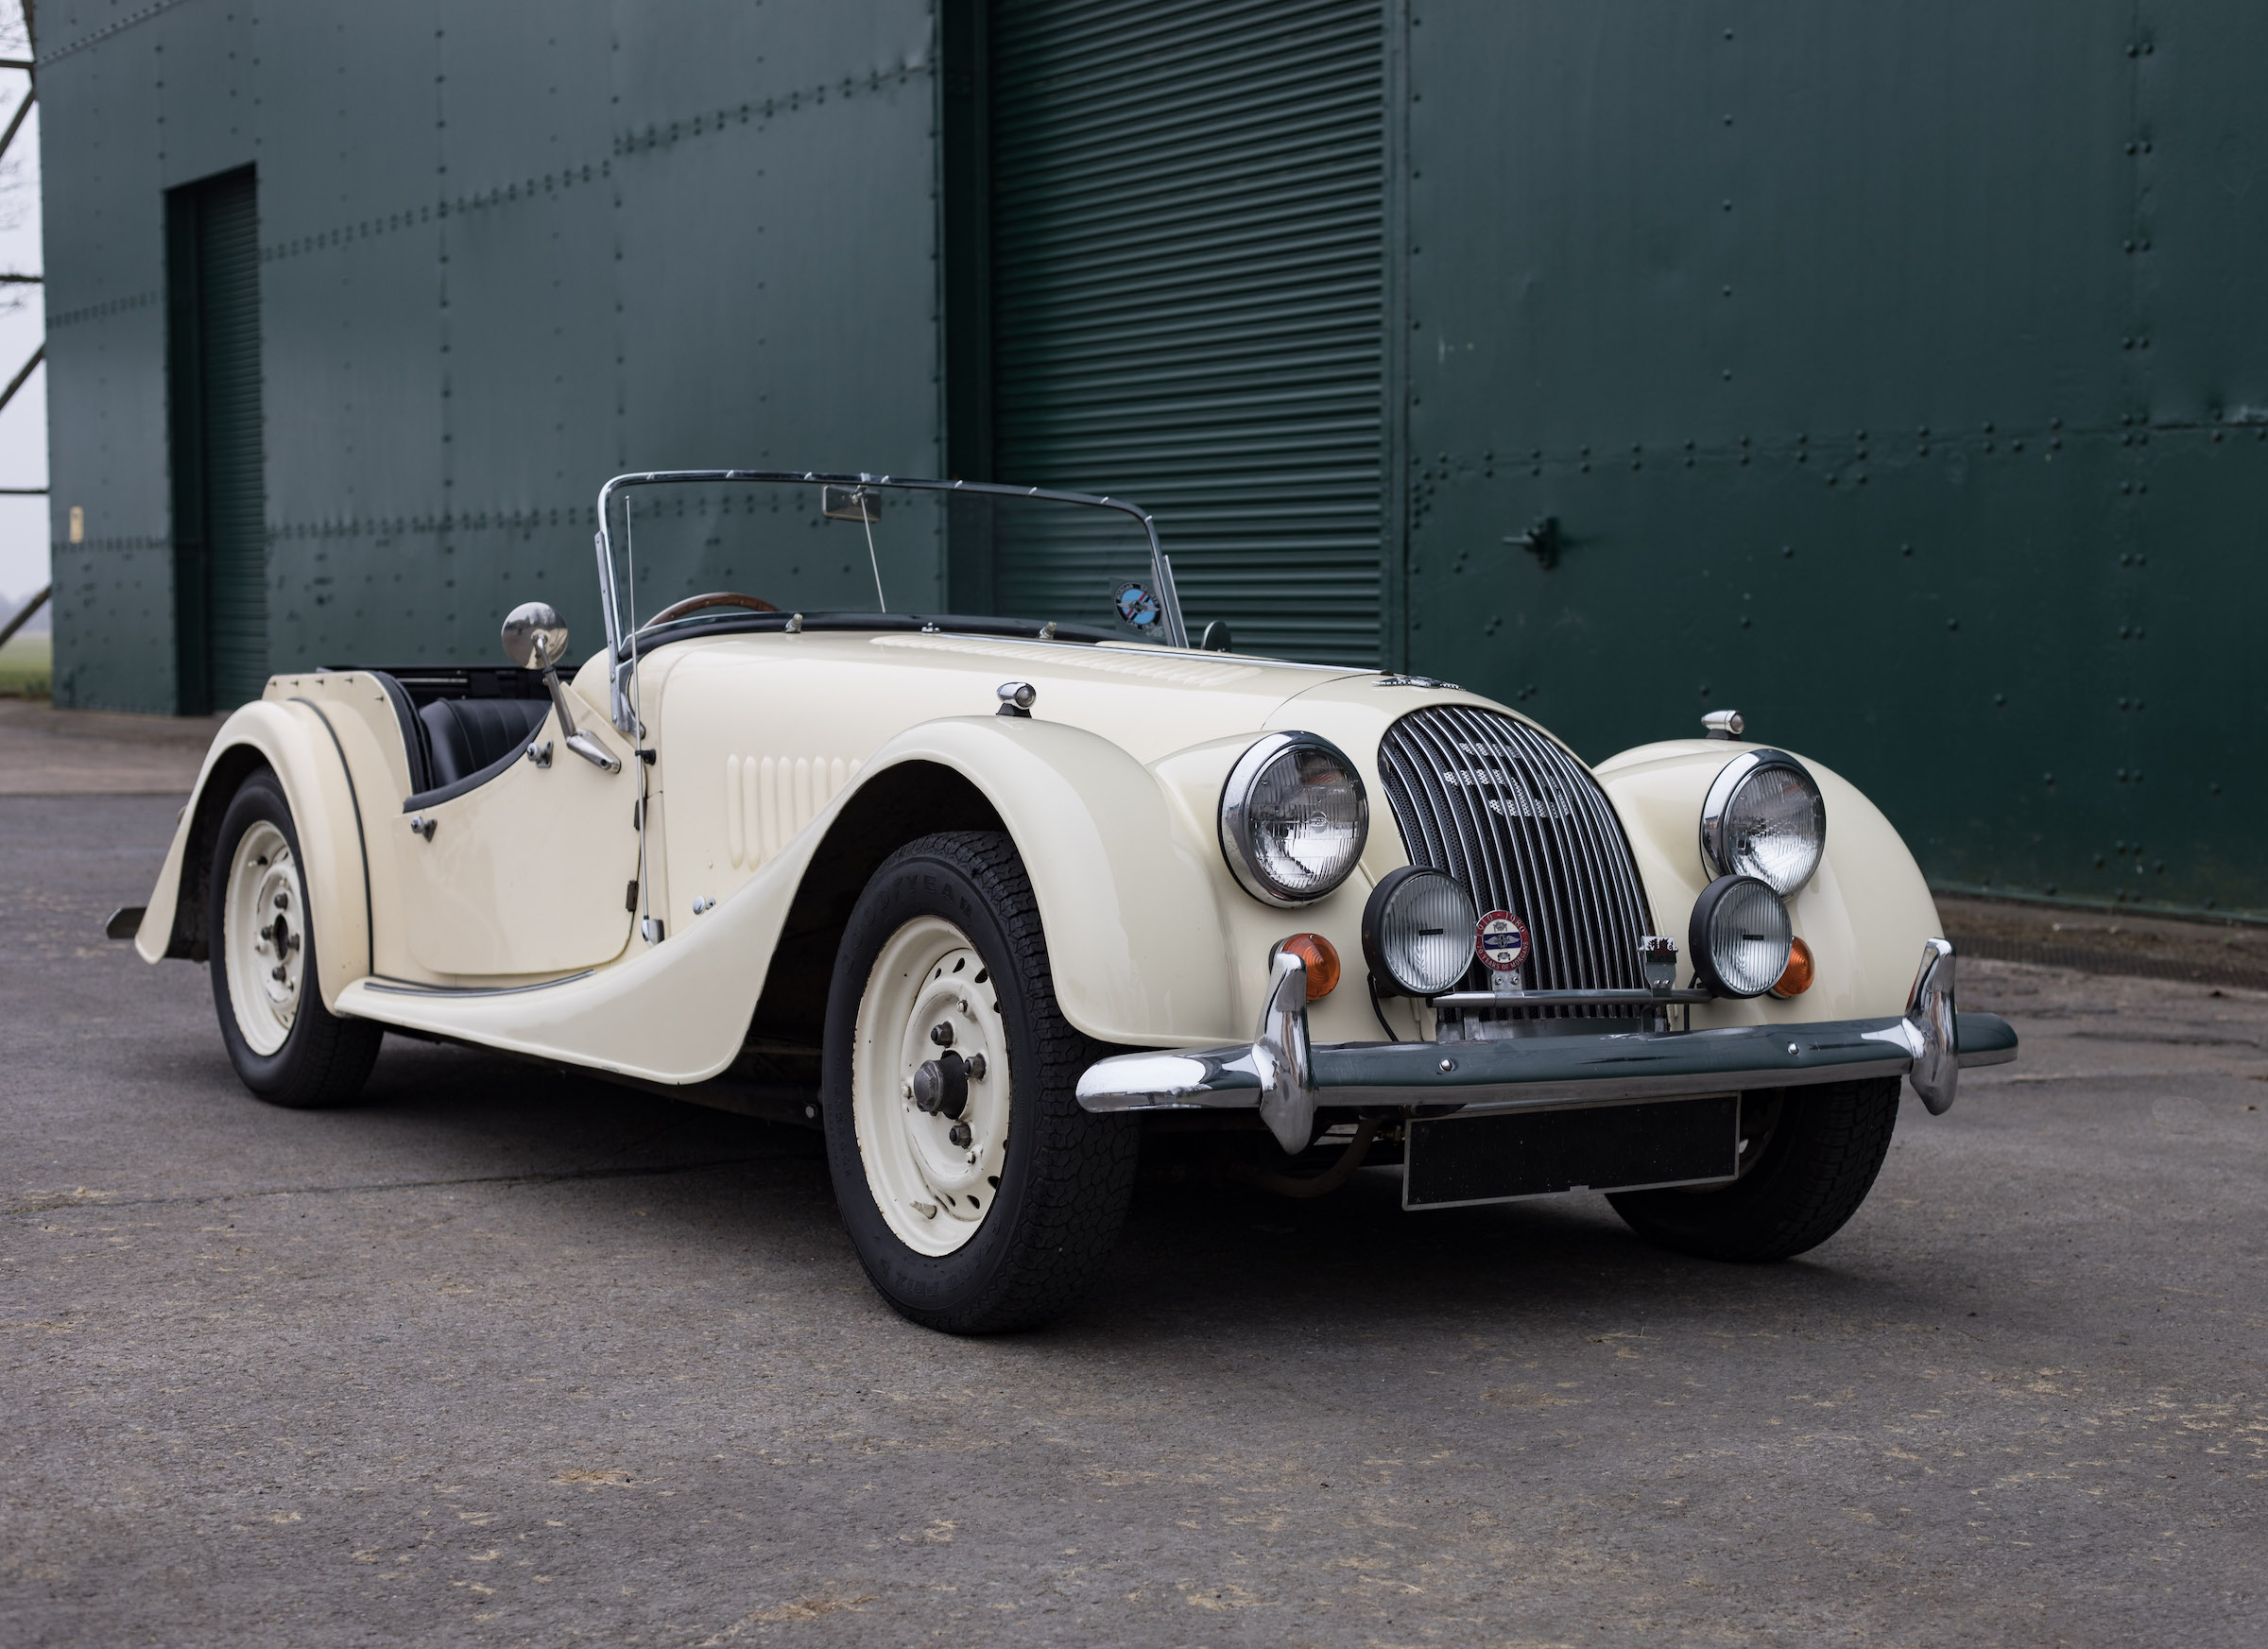 Electric Triumph Stag and Morgan 4/4 ready for the road